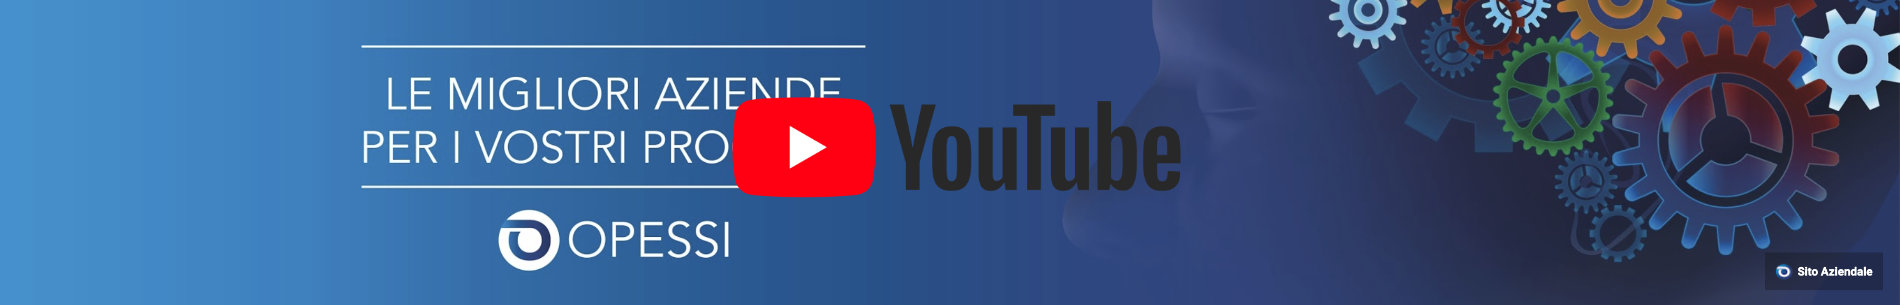 canale youtube opessi